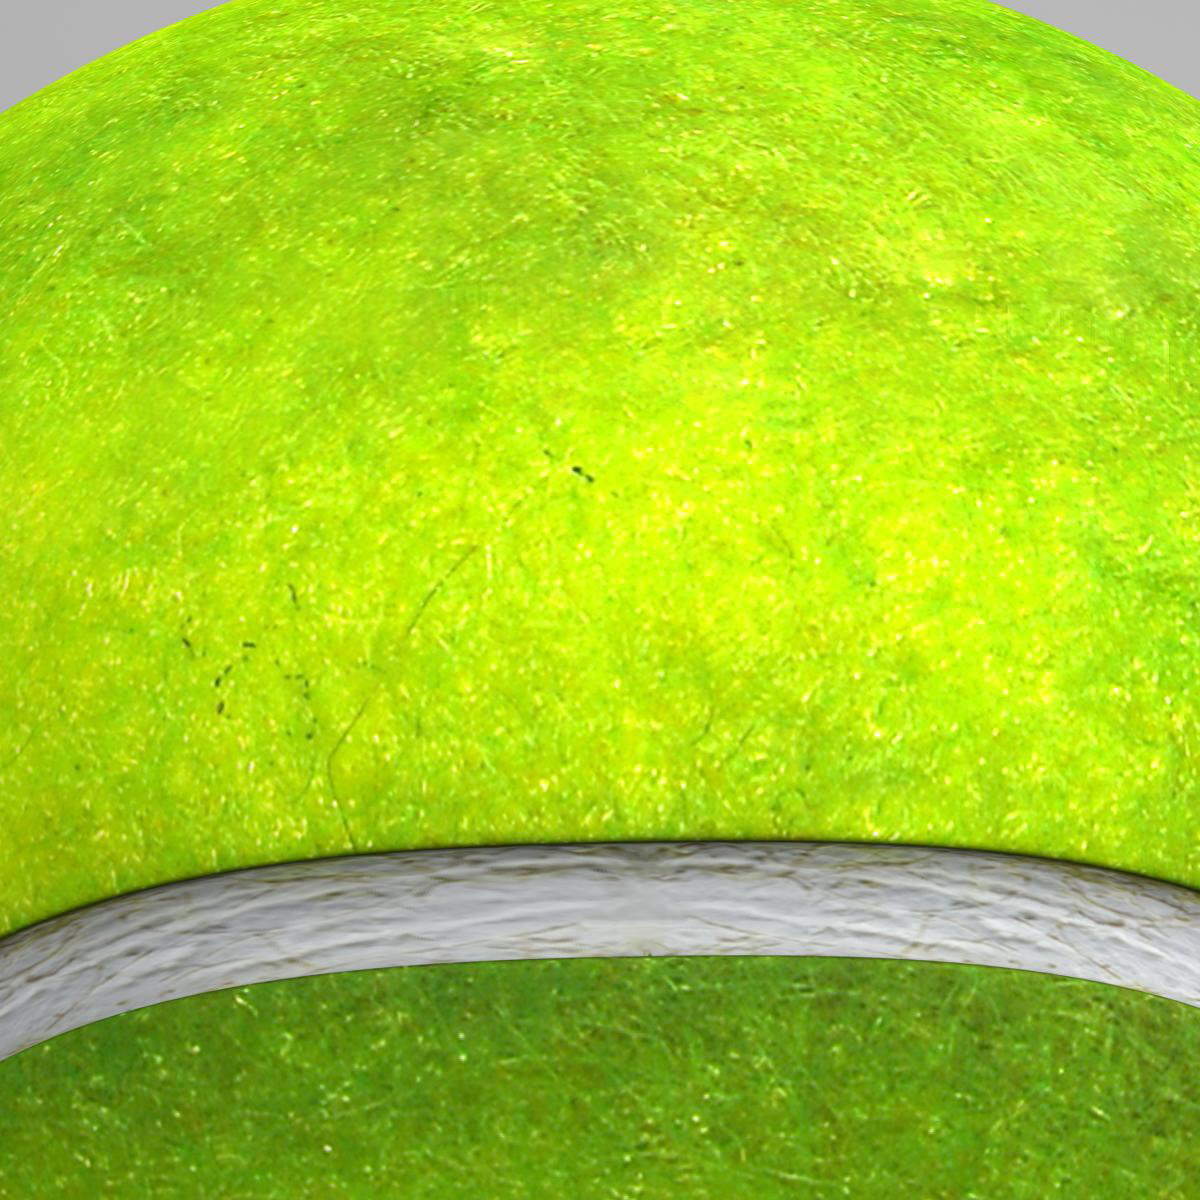 tennis ball lowpoly 3d model 3ds max fbx c4d ma mb obj 166100